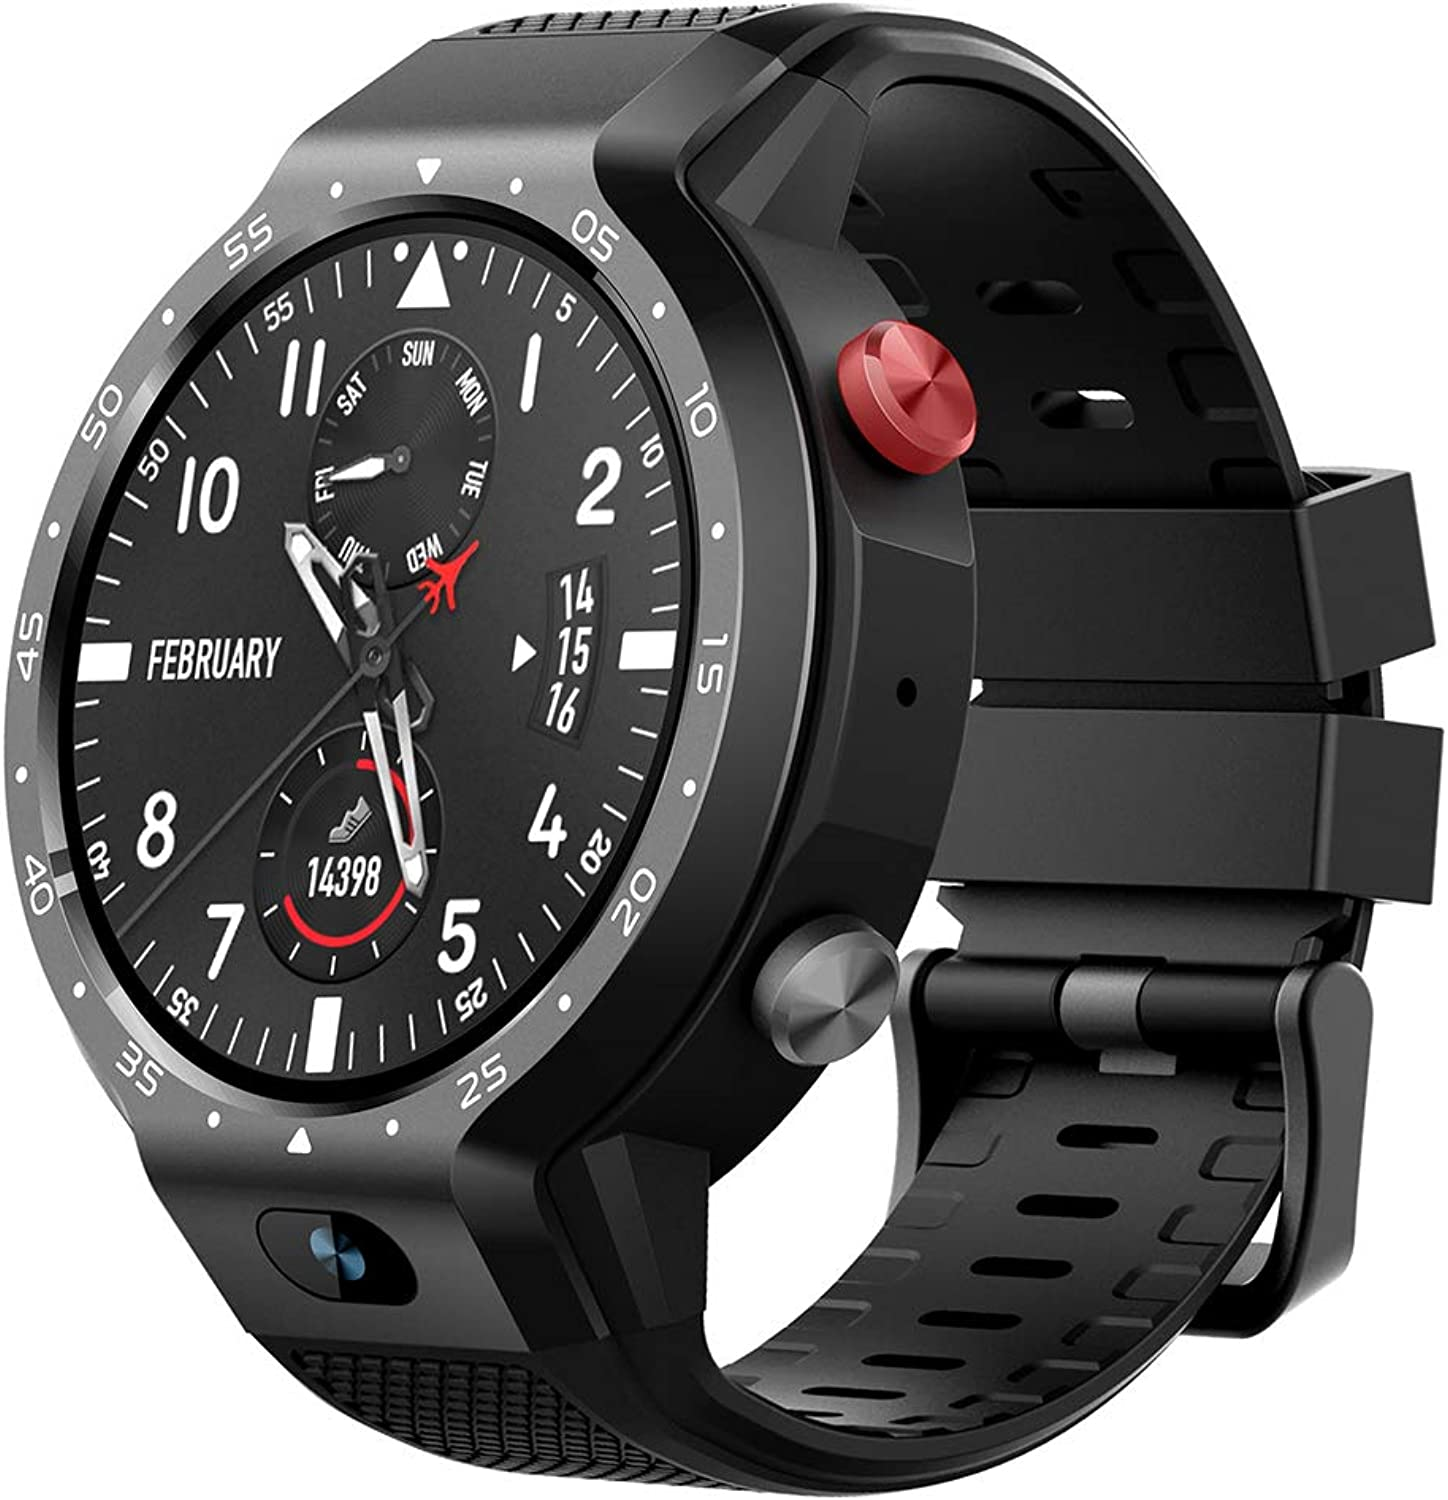 OOLIFENG GPS Smartwatch with SIM Card Slot, IP67 Waterproof Wrist Watch with Heart Rate Monitor Activity Tracker